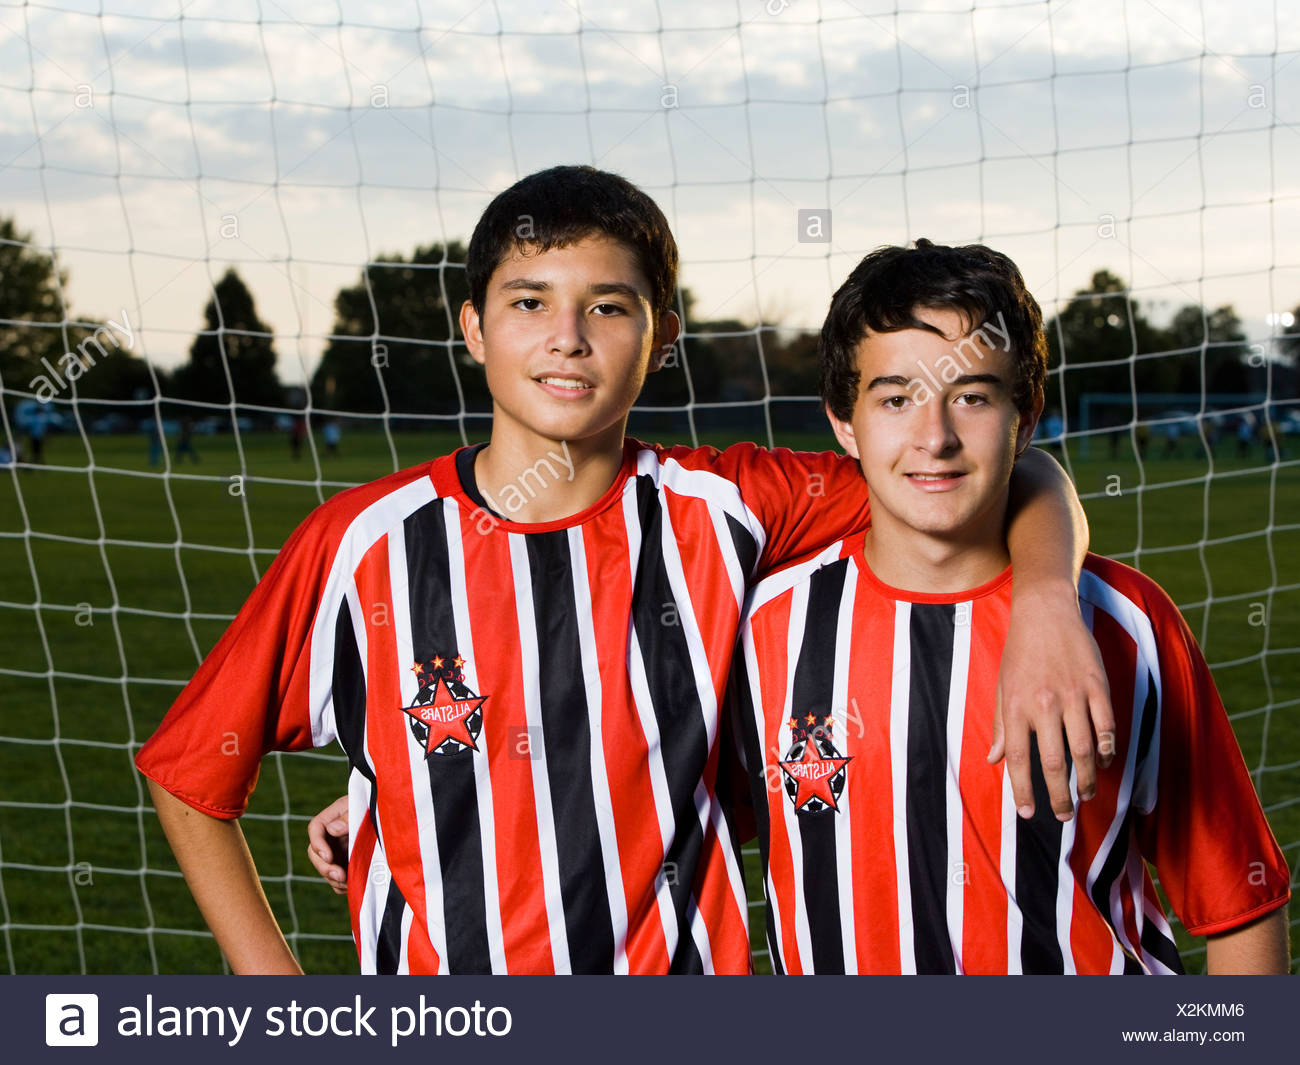 youth soccer players - Stock Image